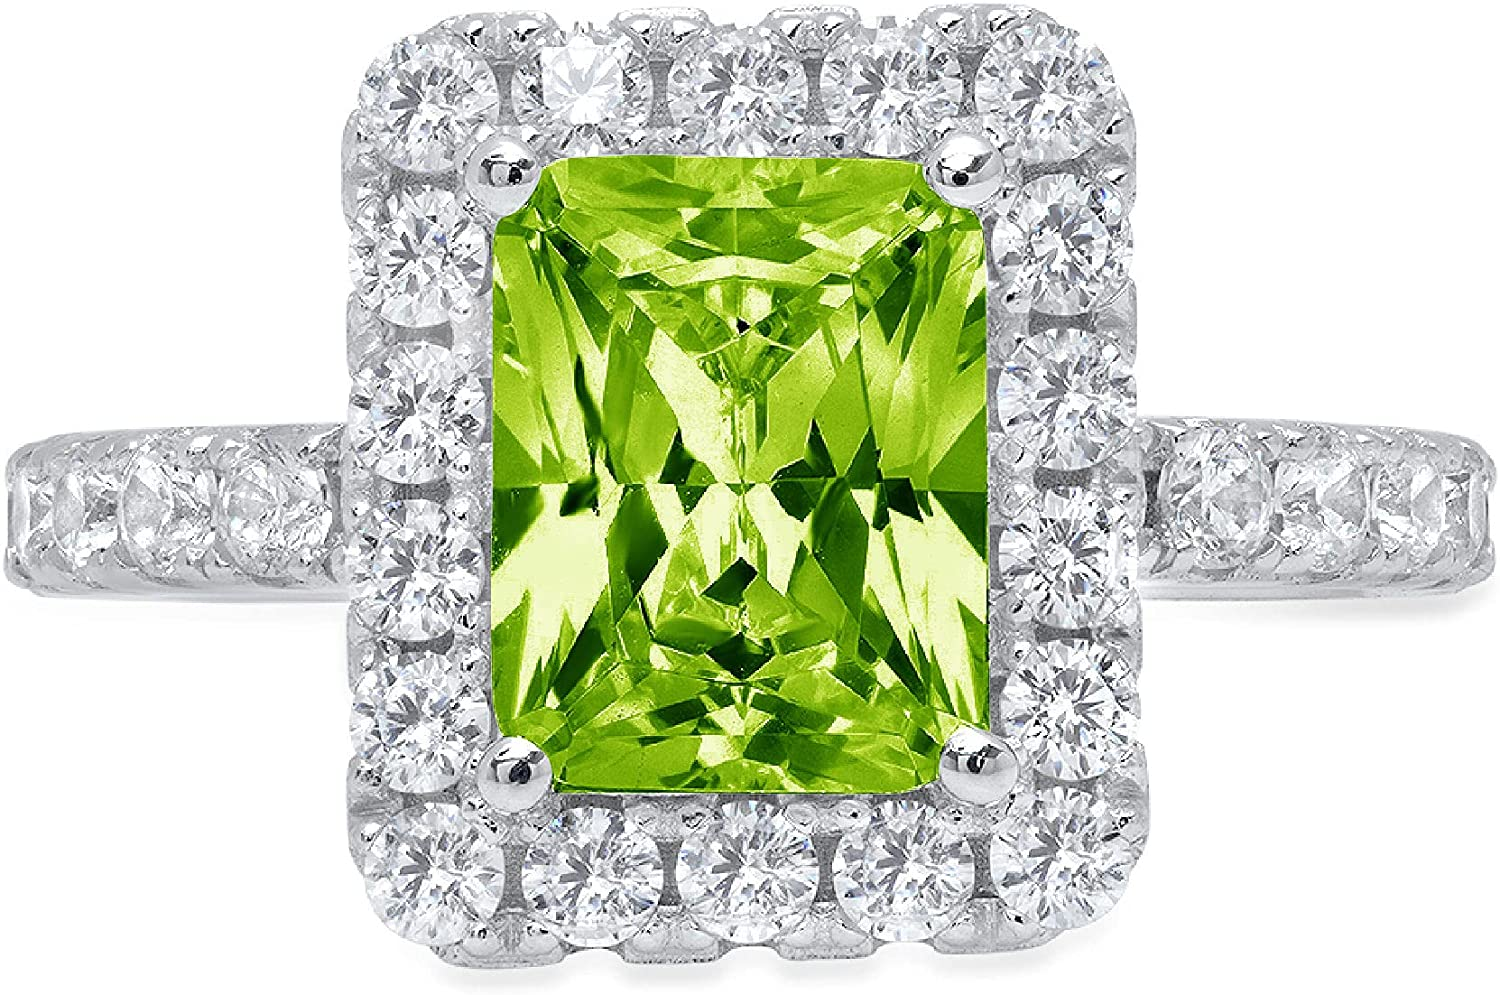 3.90ct Brilliant Emerald Challenge the lowest price of Japan Cut Solitaire Halo Flawl trend rank Accent Genuine